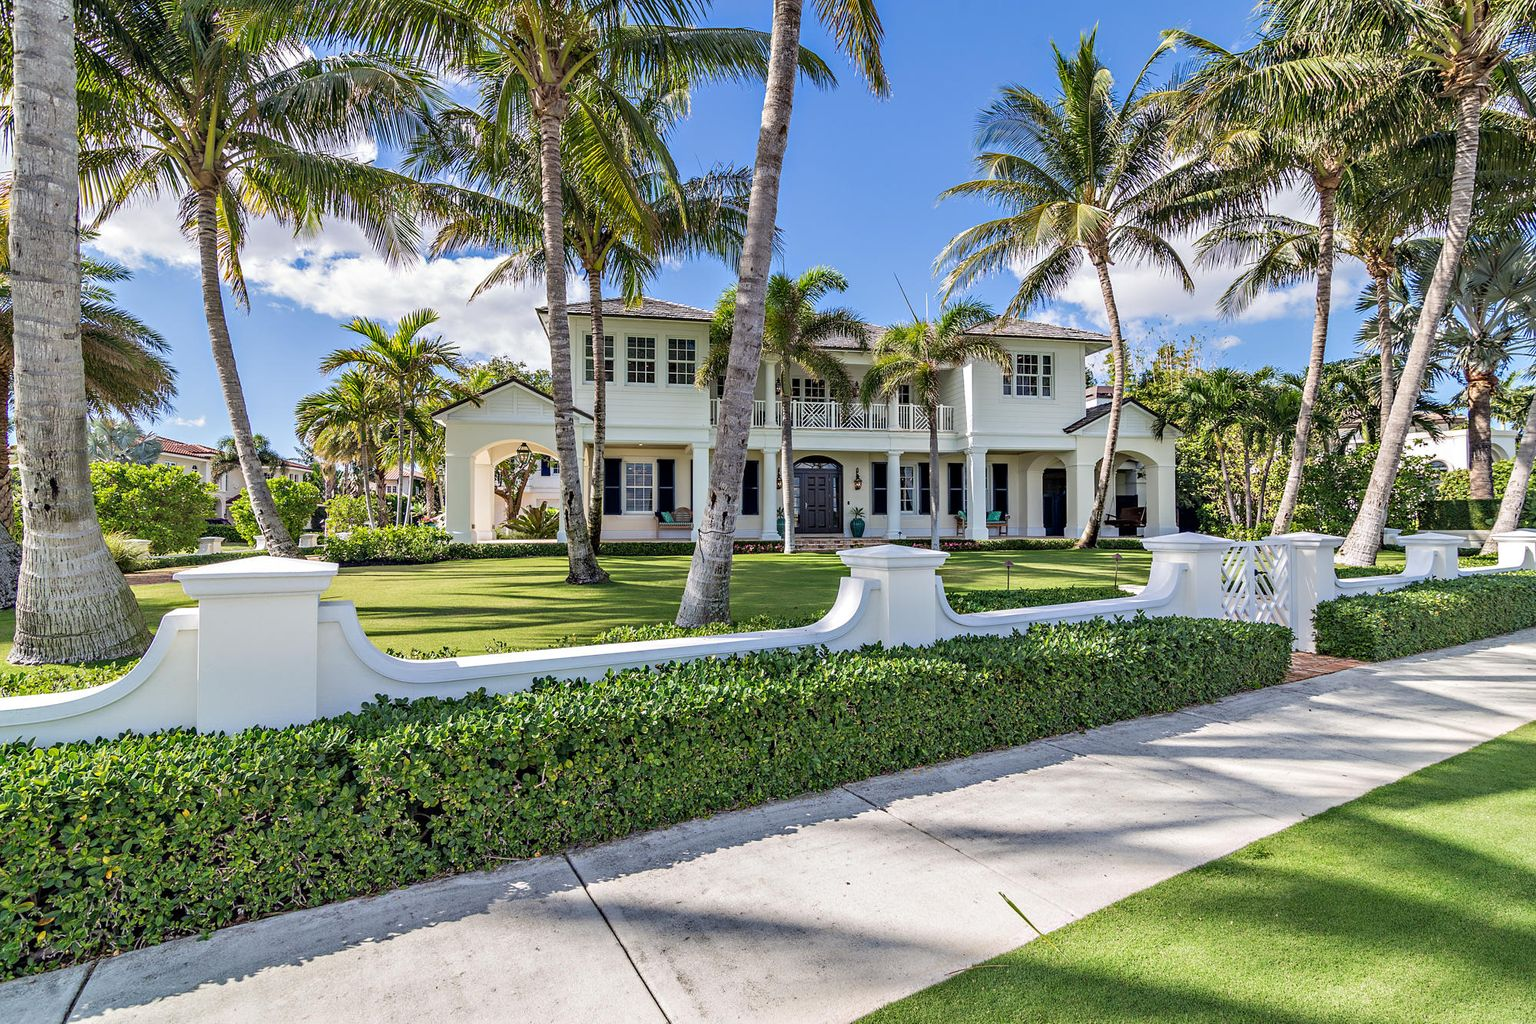 101 Palmetto Lane in West Palm Beach sold for $ 6.1 million.  Sabra Kirkpatrick represented the seller.